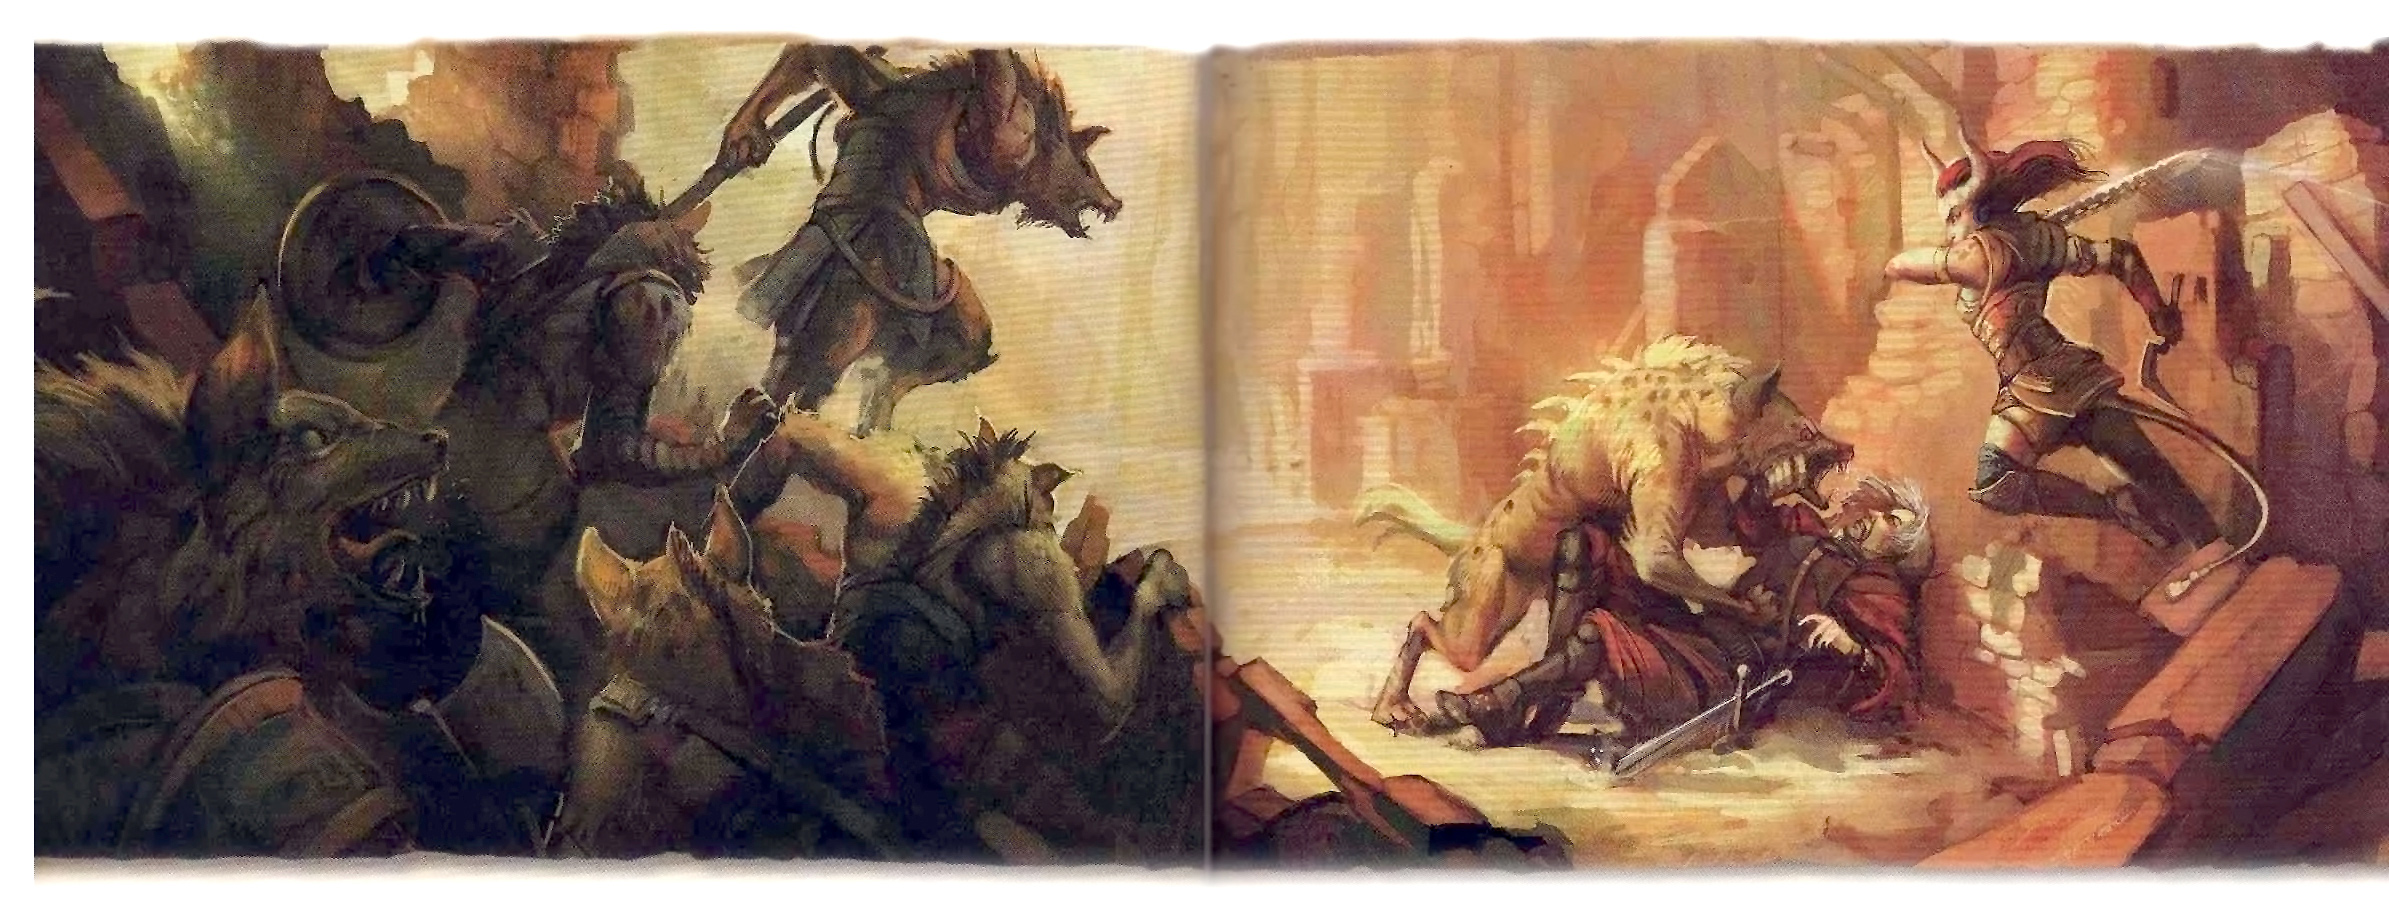 planetouched Tiefling contro iene e gnoll - by Julie Dillon Dungeon Magazine #145 (2007-04) © Wizards of the Coast & Hasbro